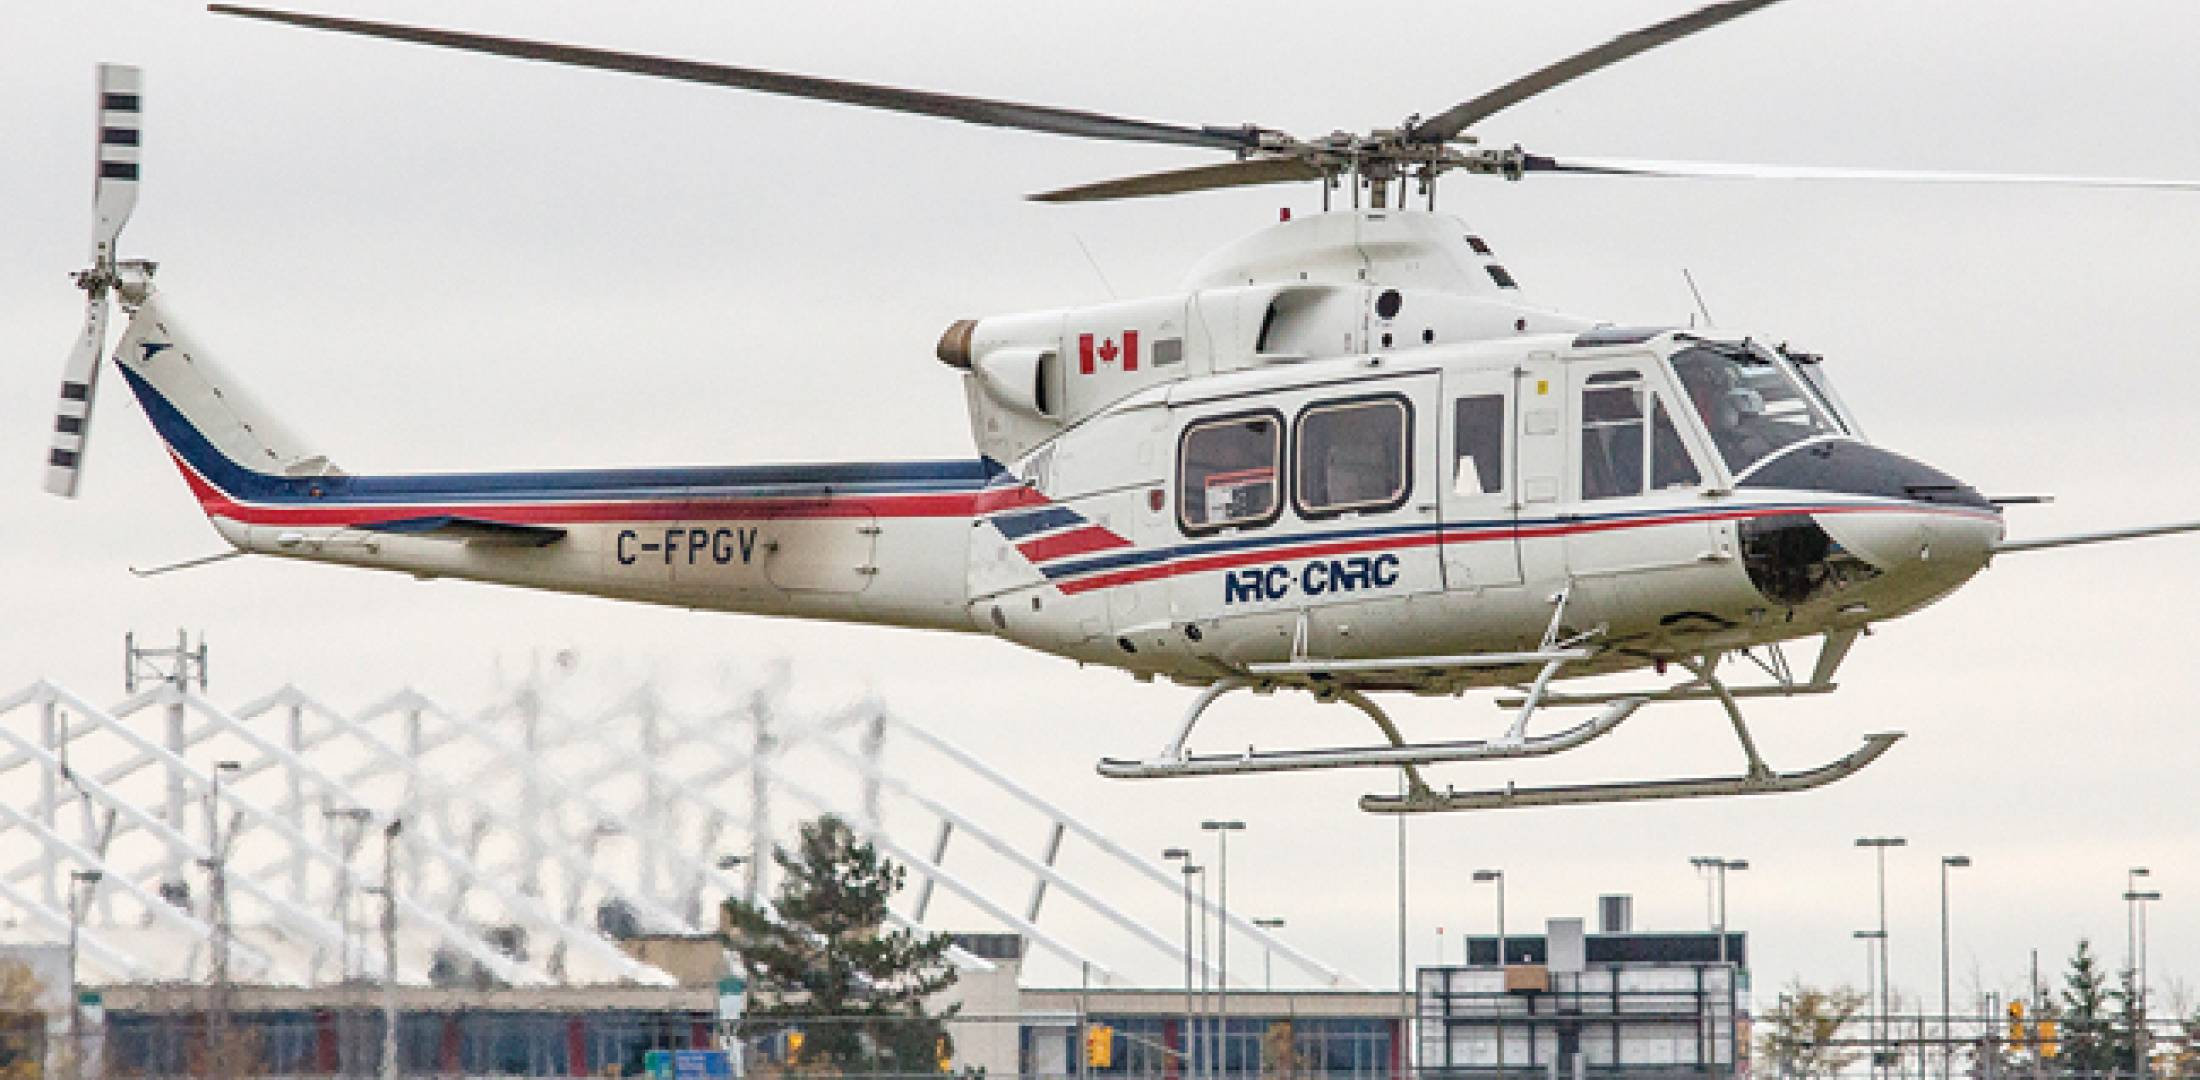 L-3 Link Simulation and Training used a National Research Council of Canada Bell 412 as part of its research into improving fidelity-measuring standards for simulators.